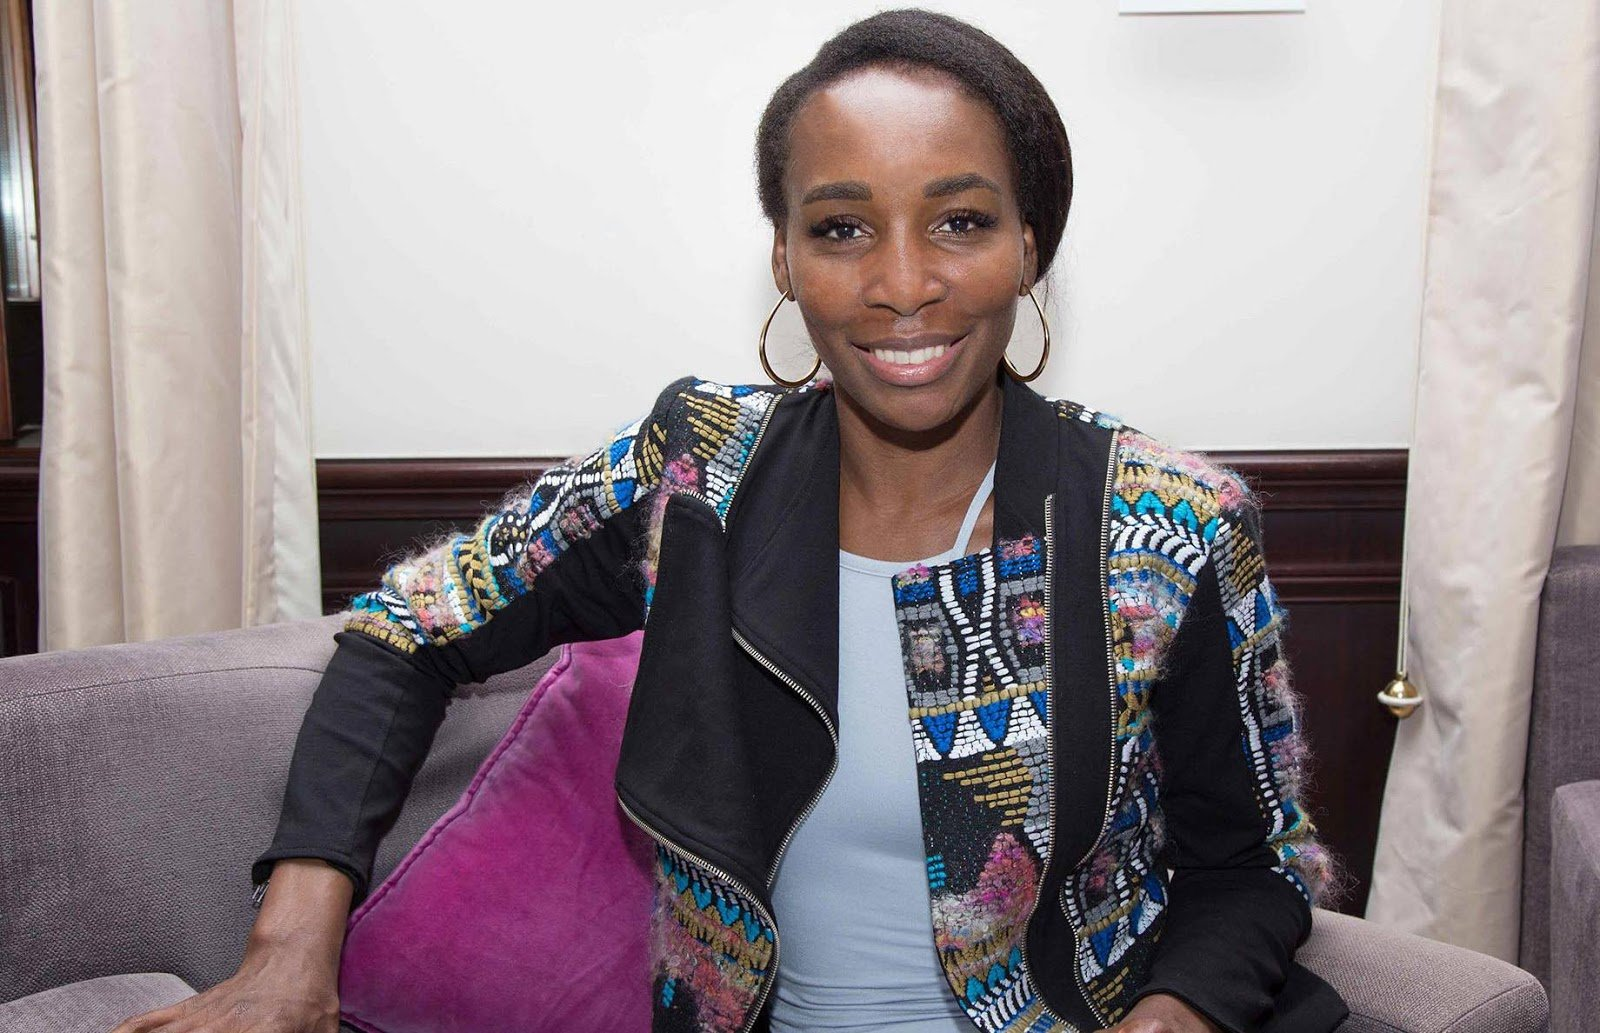 Venus Williams to Star in and Produce Reality Television Series Focused on Women Entrepreneurs